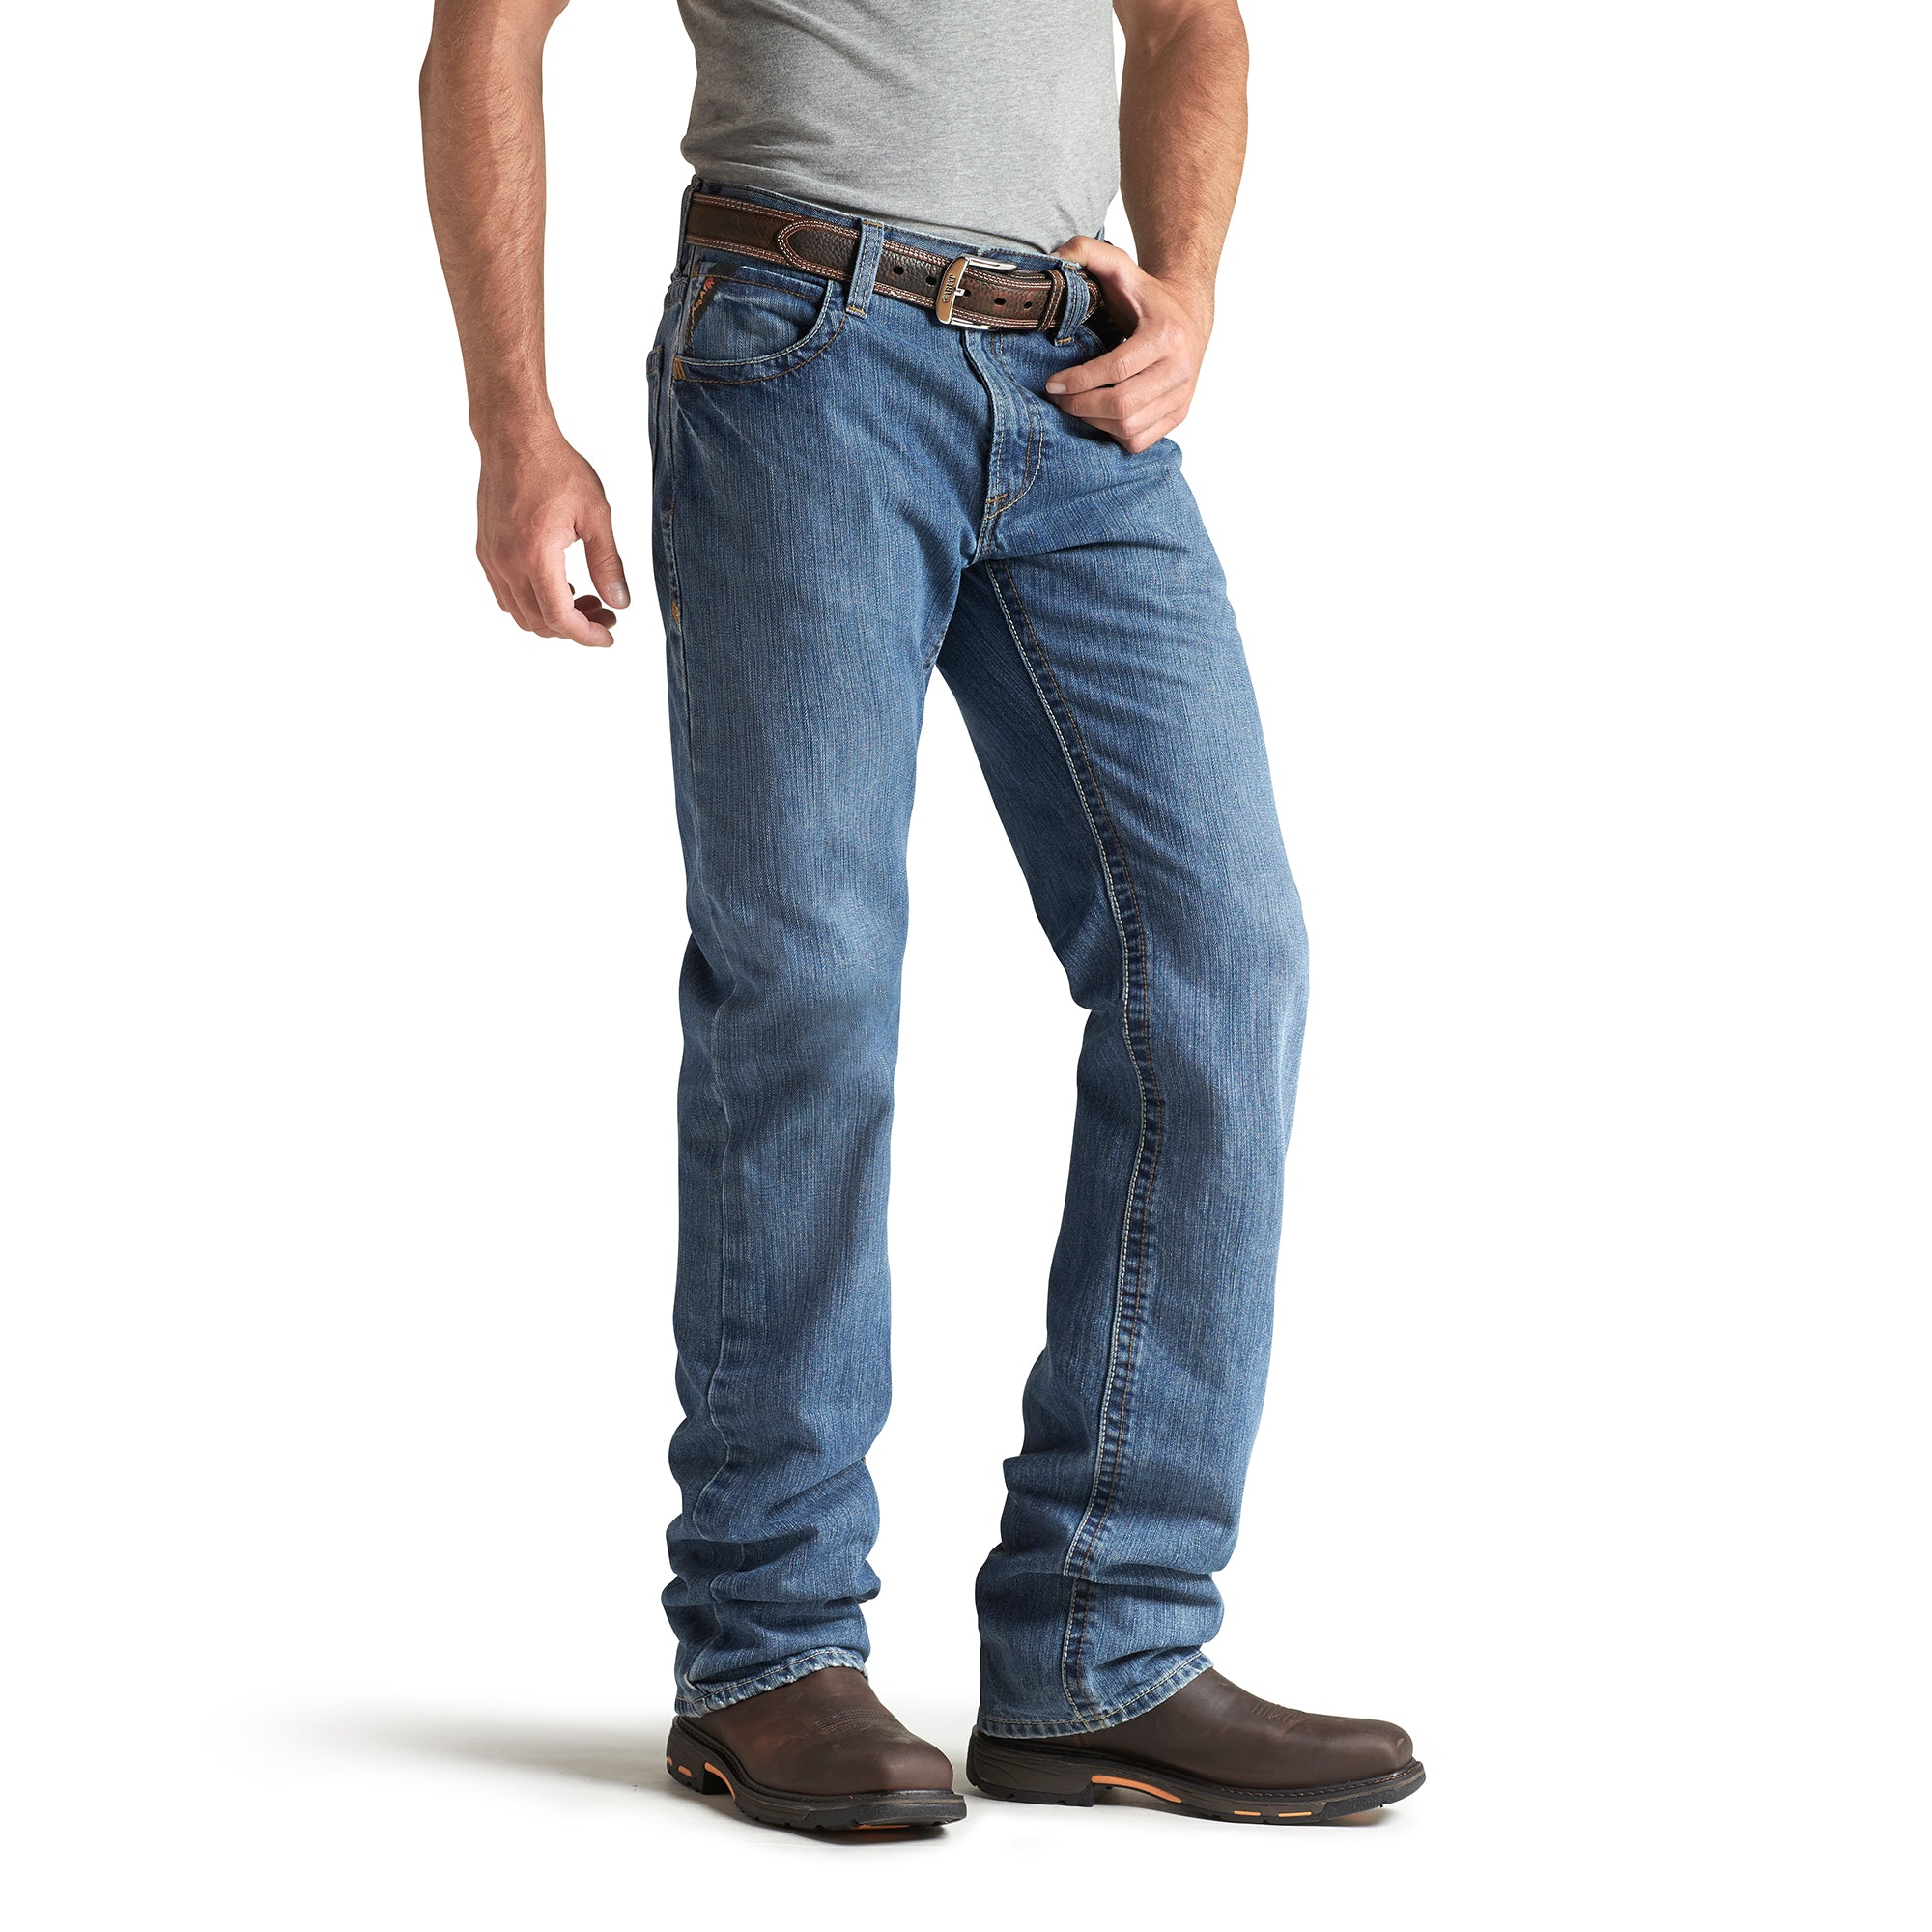 Ariat Men's FR Jeans - M3 Relaxed Straight Leg